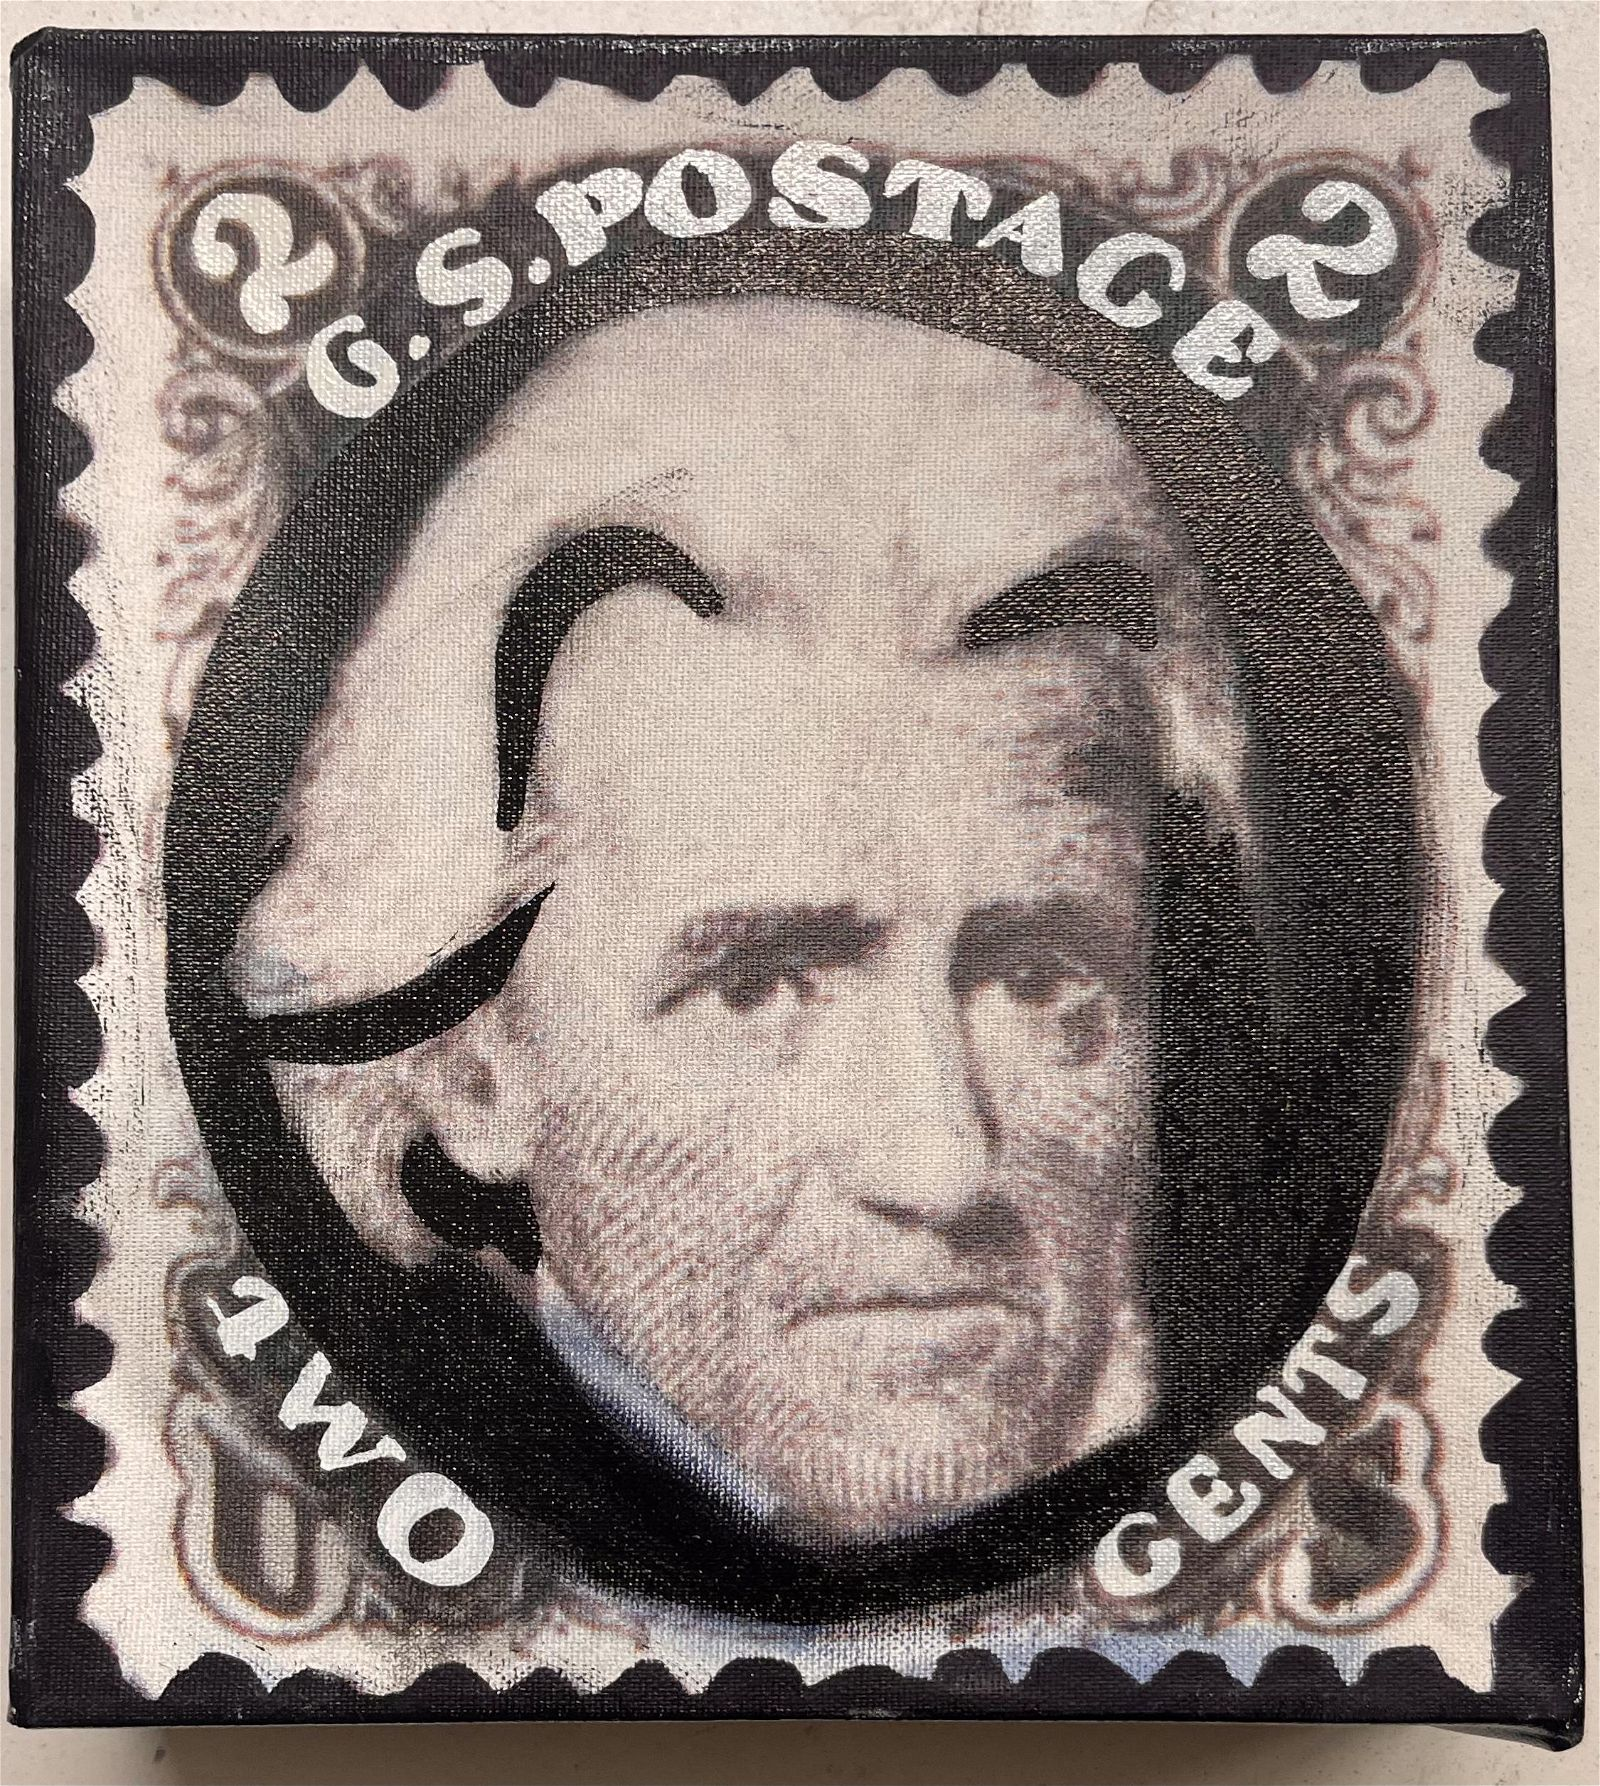 GS Postage 2 Cents by Steve Kaufman KAW